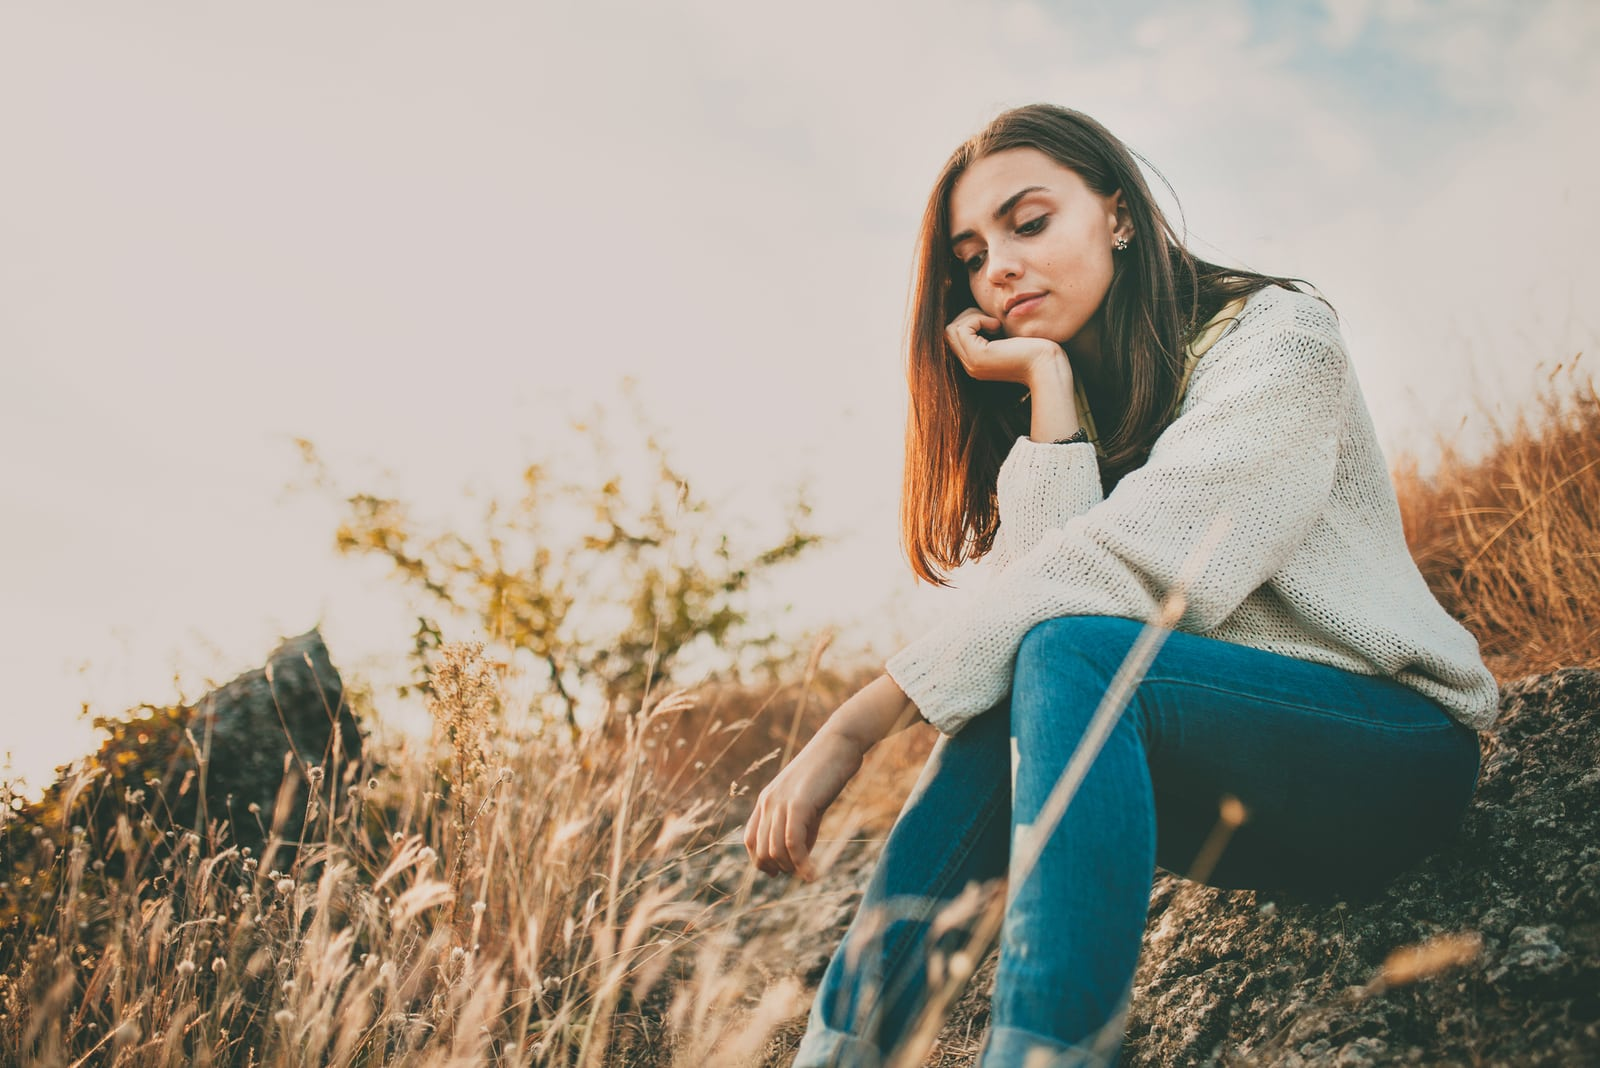 mindful young woman sitting outdoor in nature